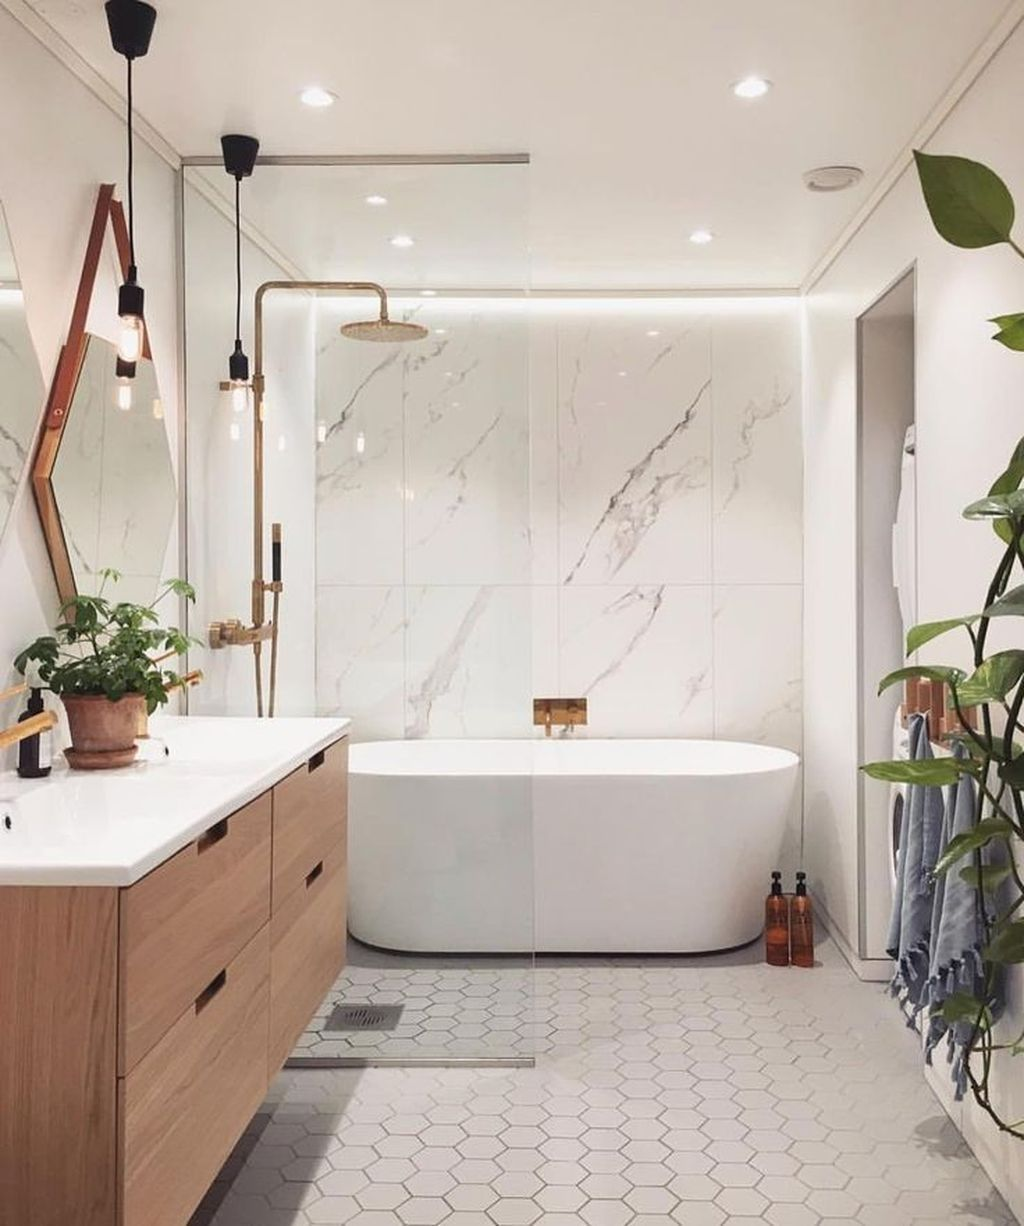 Luxury Bathroom Design And Decor Ideas 21